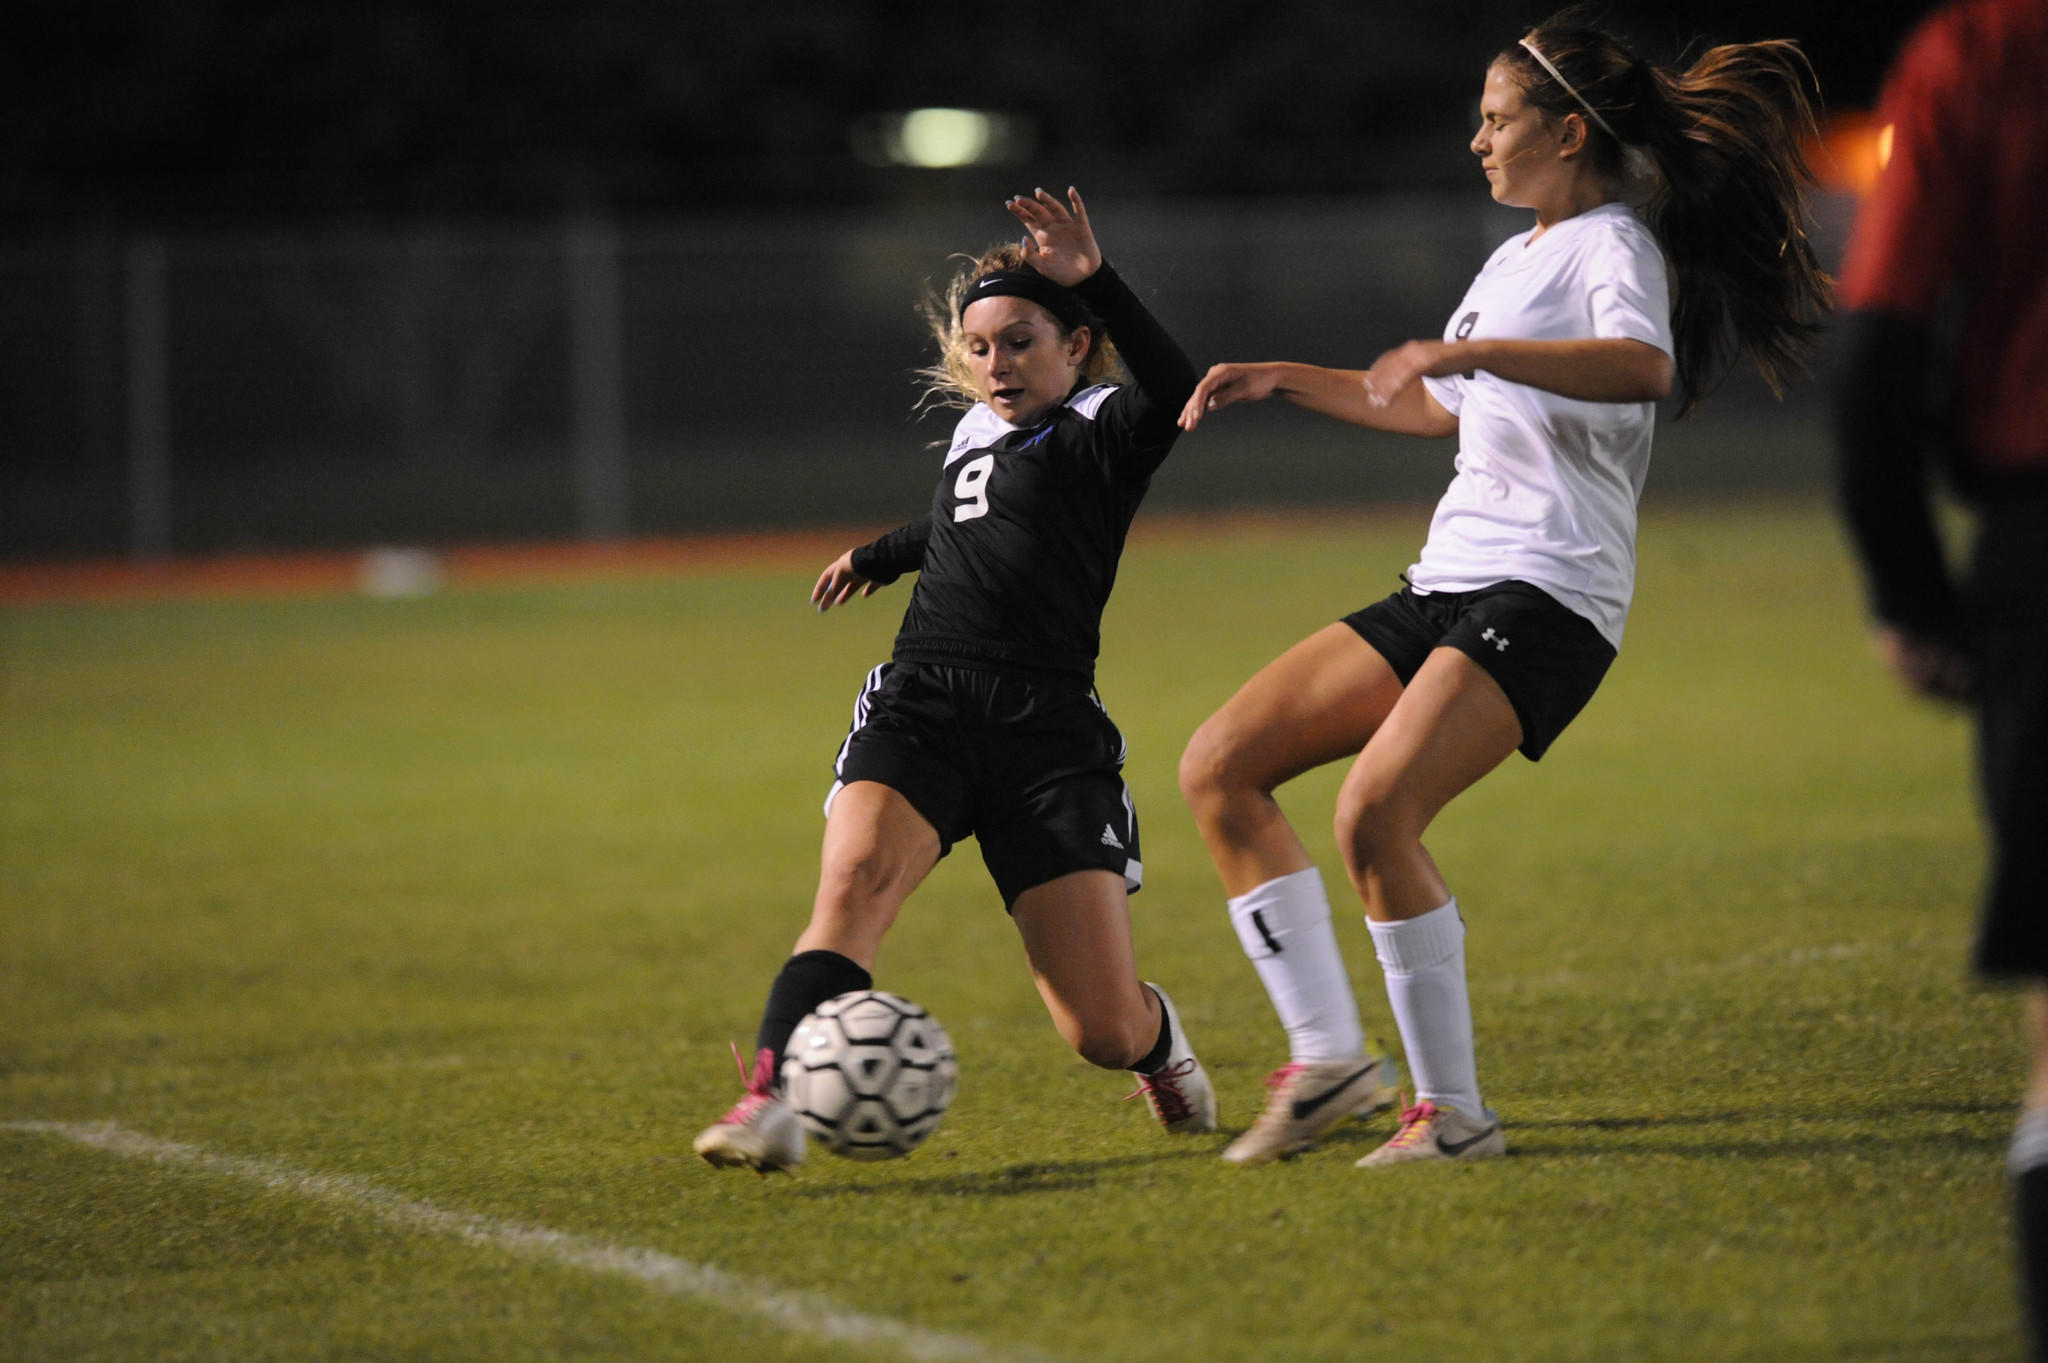 Park Vista's Allyson Weber, left, saves the ball as Douglas' Julia Corin defends in the Class 5A regional quartefinal against host Douglas on Thursday night.